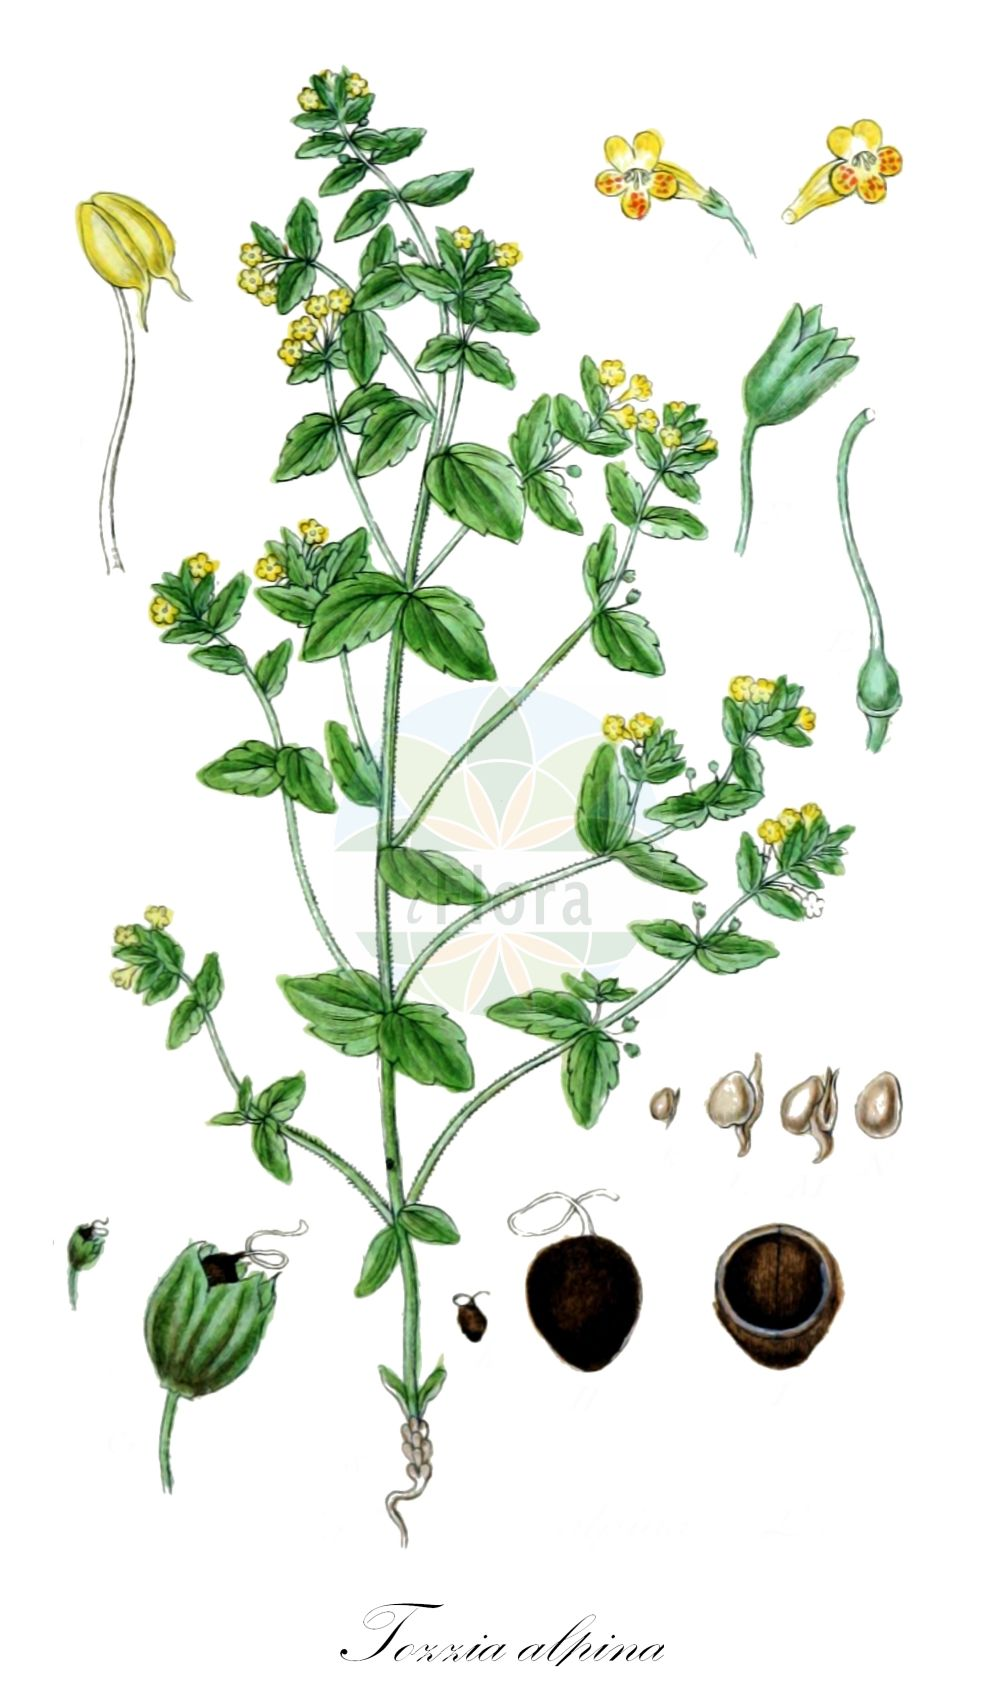 Historische Abbildung von Tozzia alpina (Alpenrachen - Alpine Tozzia). Das Bild zeigt Blatt, Bluete, Frucht und Same. ---- Historical Drawing of Tozzia alpina (Alpenrachen - Alpine Tozzia).The image is showing leaf, flower, fruit and seed.(Tozzia alpina,Alpenrachen,Alpine Tozzia,Tozzie,Tozzia,Alpenrachen,Orobanchaceae,Sommerwurzgewaechse,Broomrape family,Blatt,Bluete,Frucht,Same,leaf,flower,fruit,seed,Sturm (1796f))